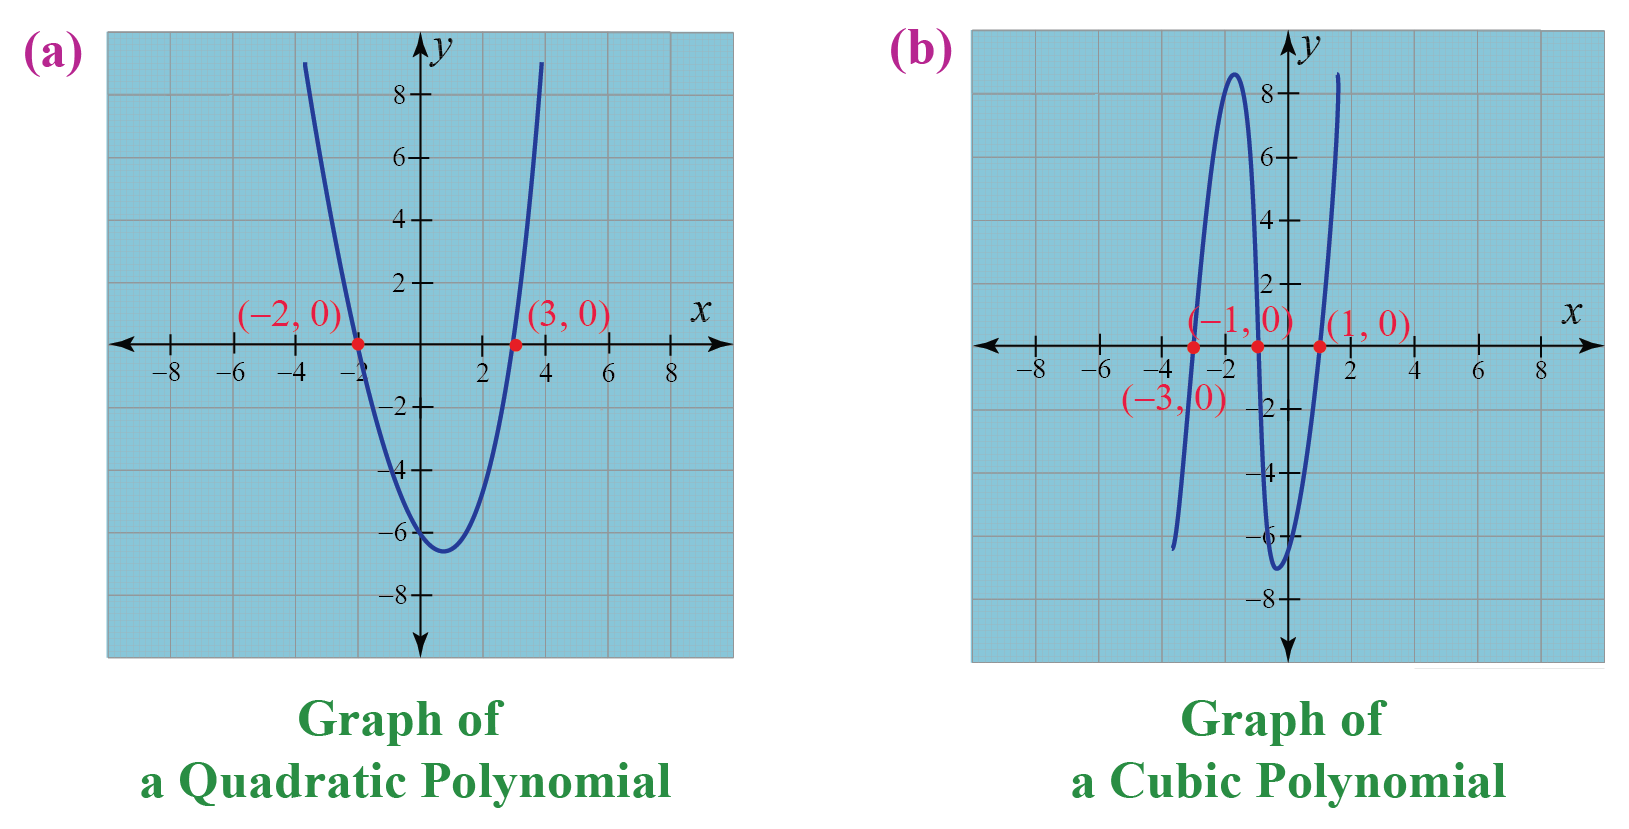 x intercept of a polynomial is given, find the sum of the roots of the cubic equation. Alsofind the product of the roots of thepolynomial represented in the graphs.